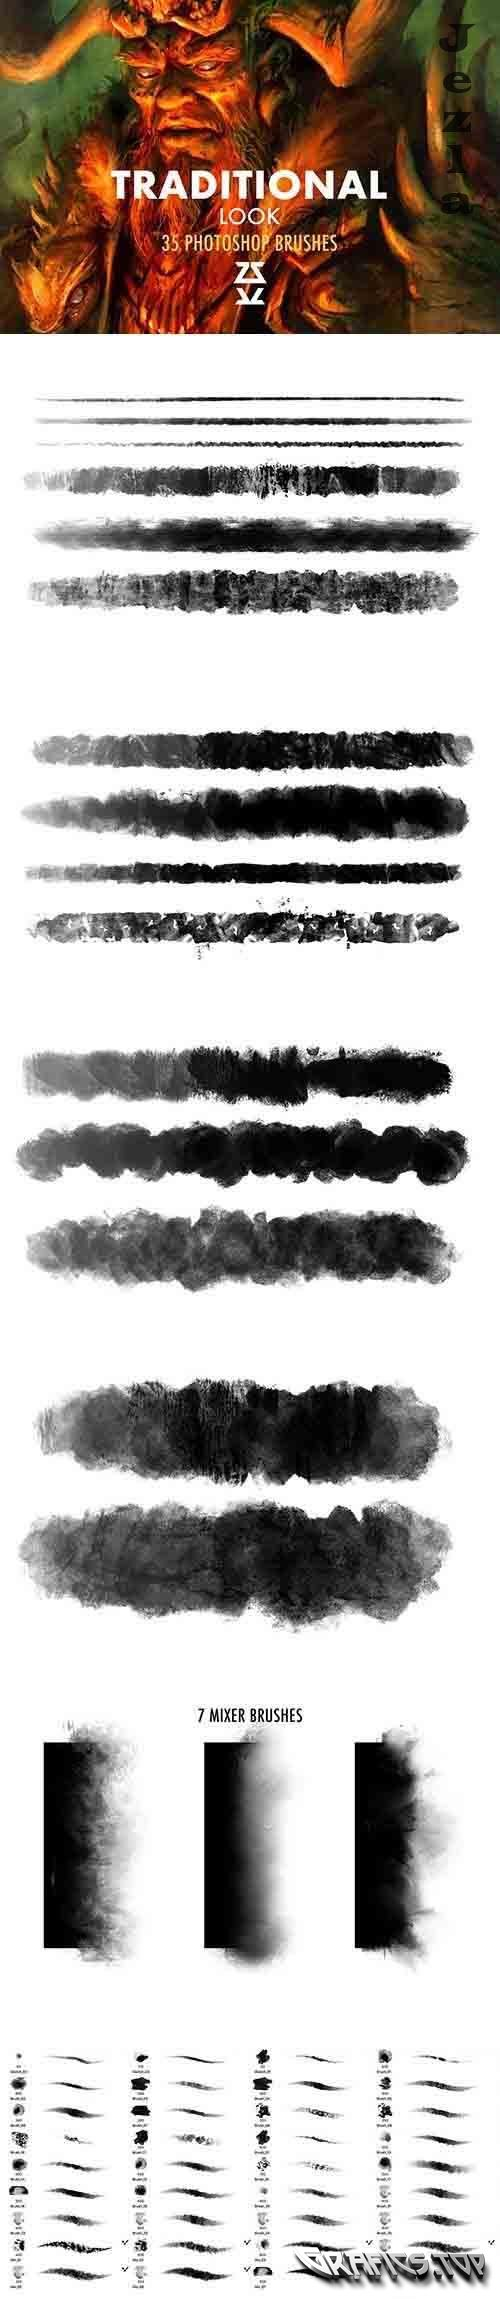 CreativeMarket - Traditional Look Brush Set 5907463